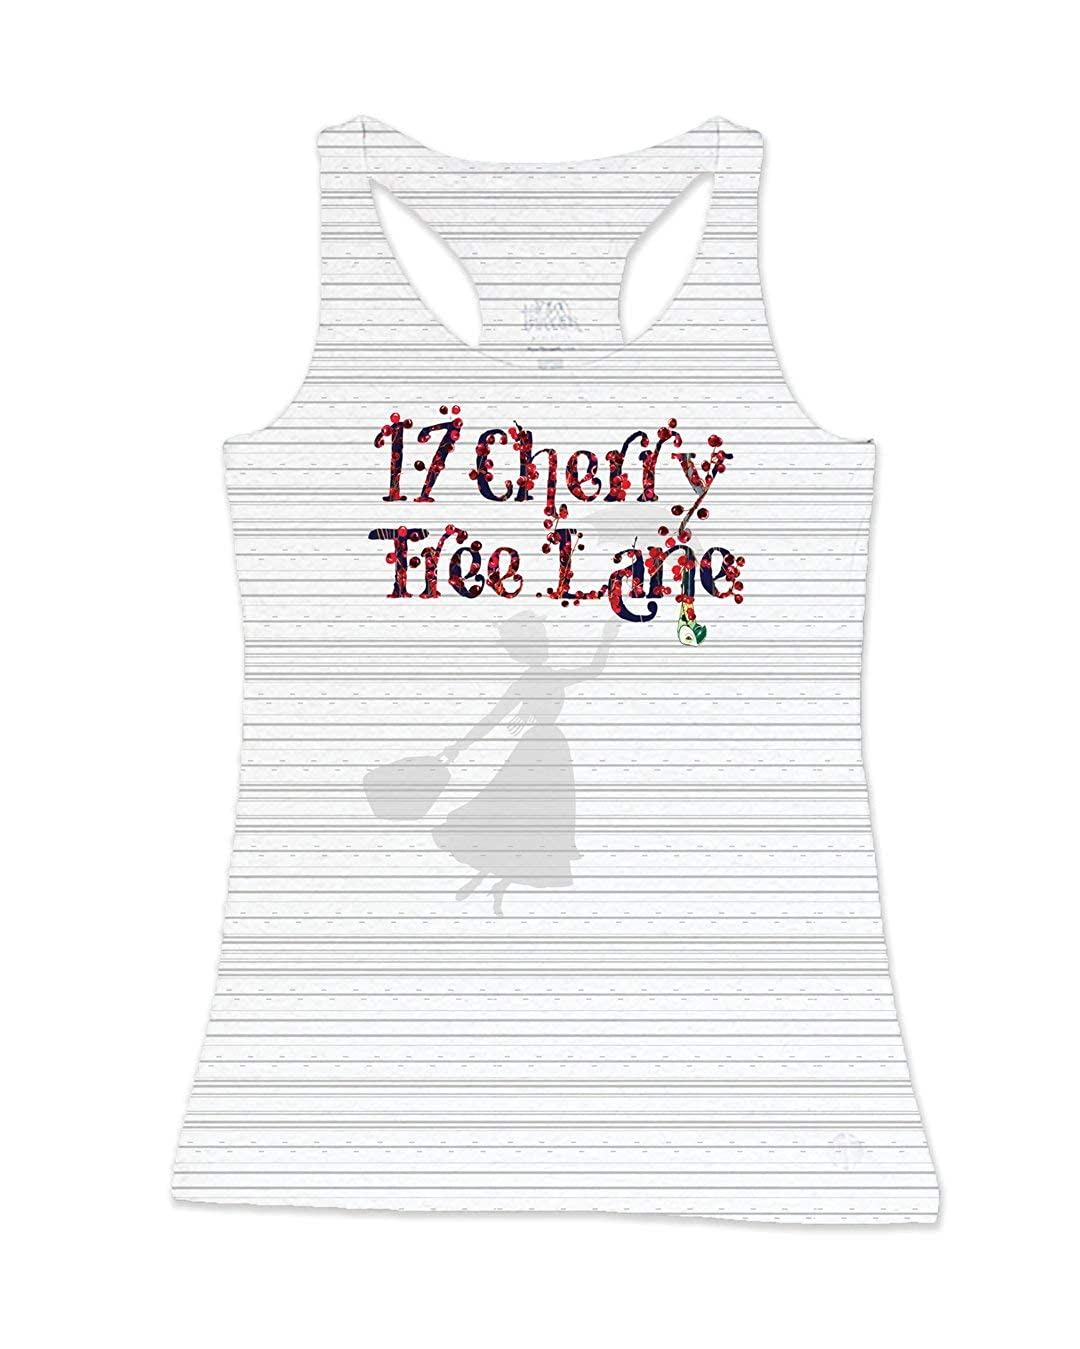 Marry Poppins 17 Cherry Tree Lane Core Racer Back Performance Tank